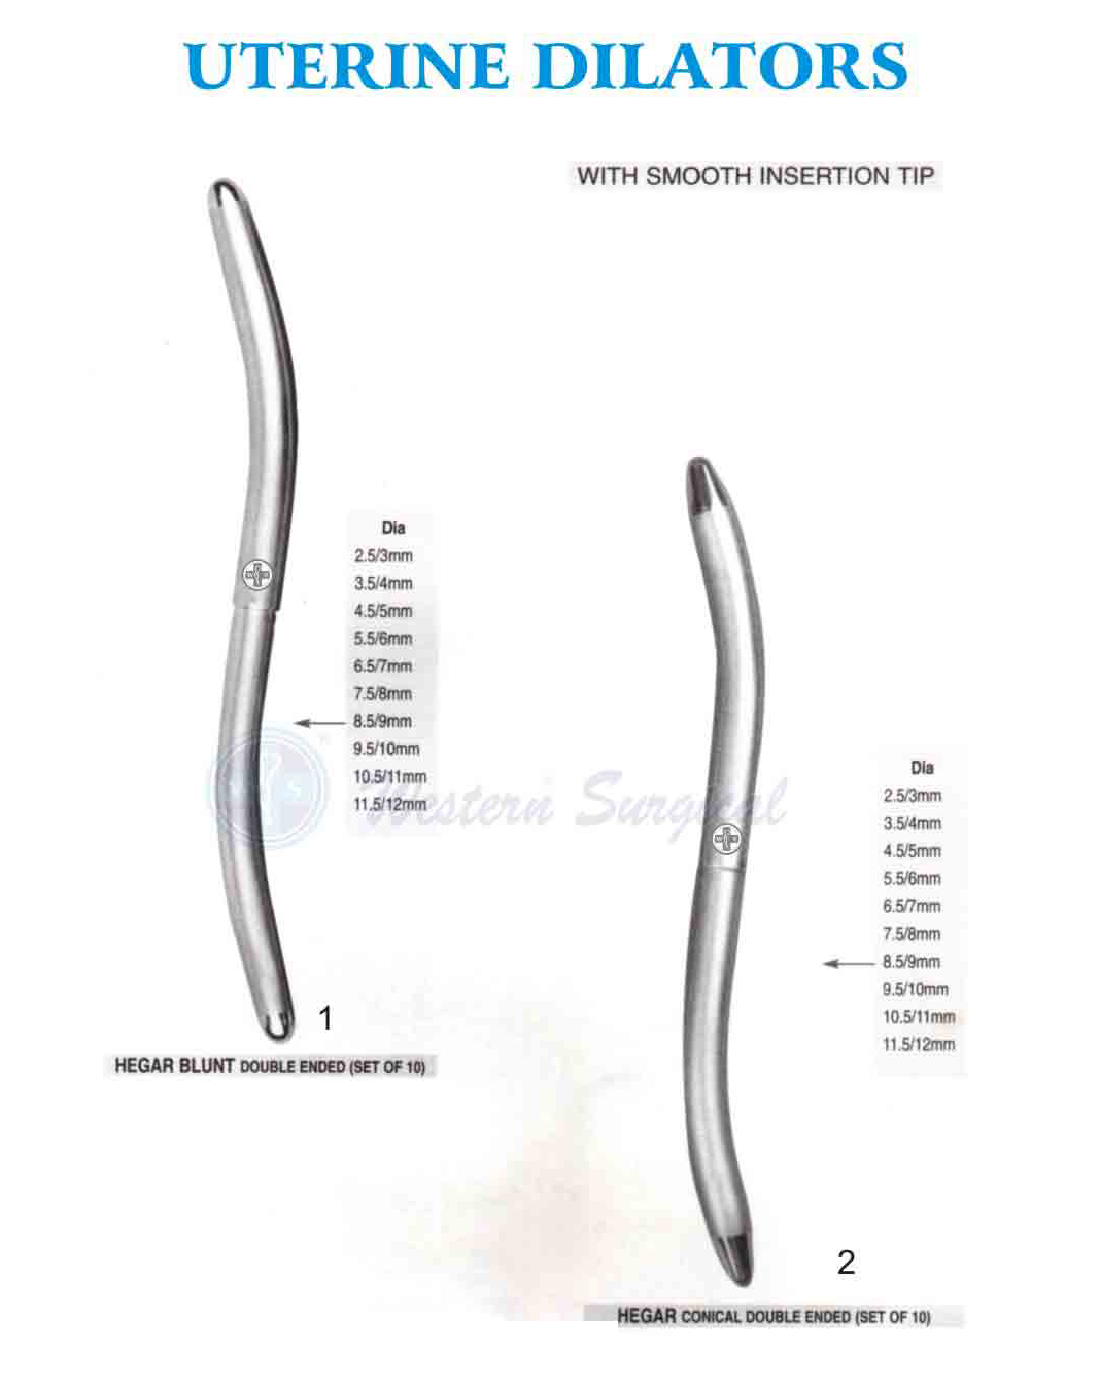 Uterine Dilators